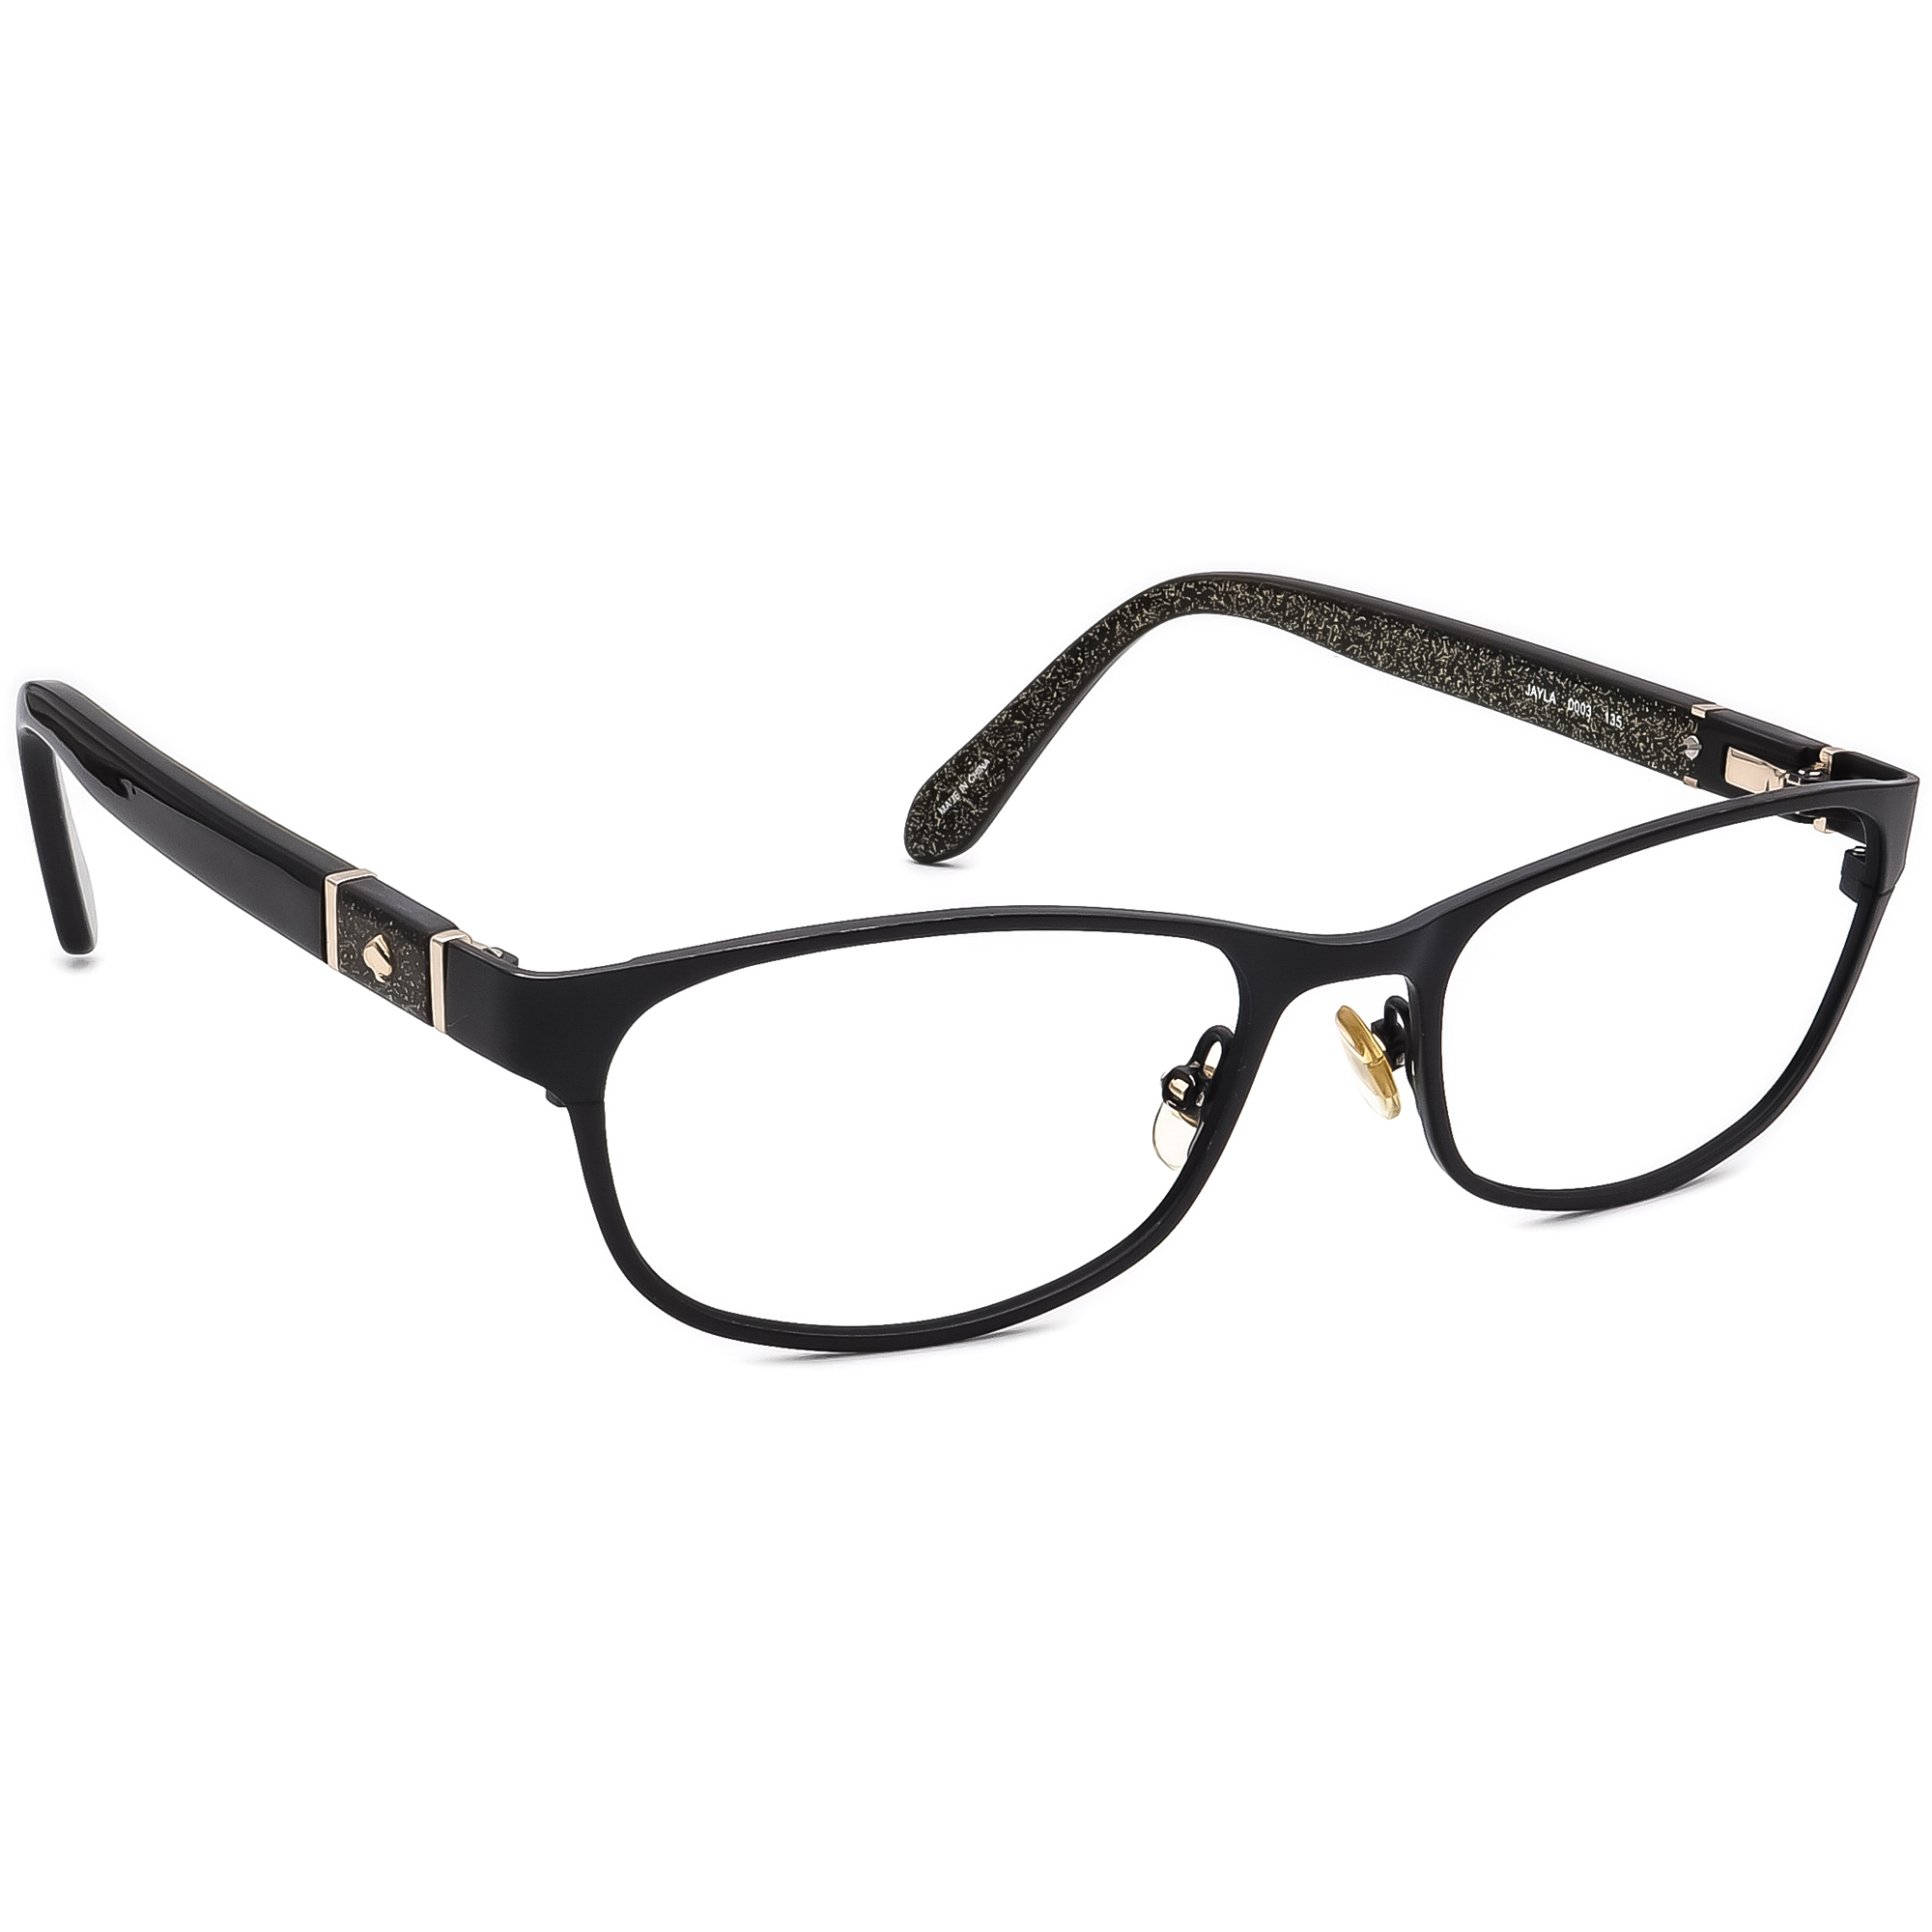 Kate Spade Women's Eyeglasses Jayla 0003 Black/Gold Glitter Frame 50[]17 135